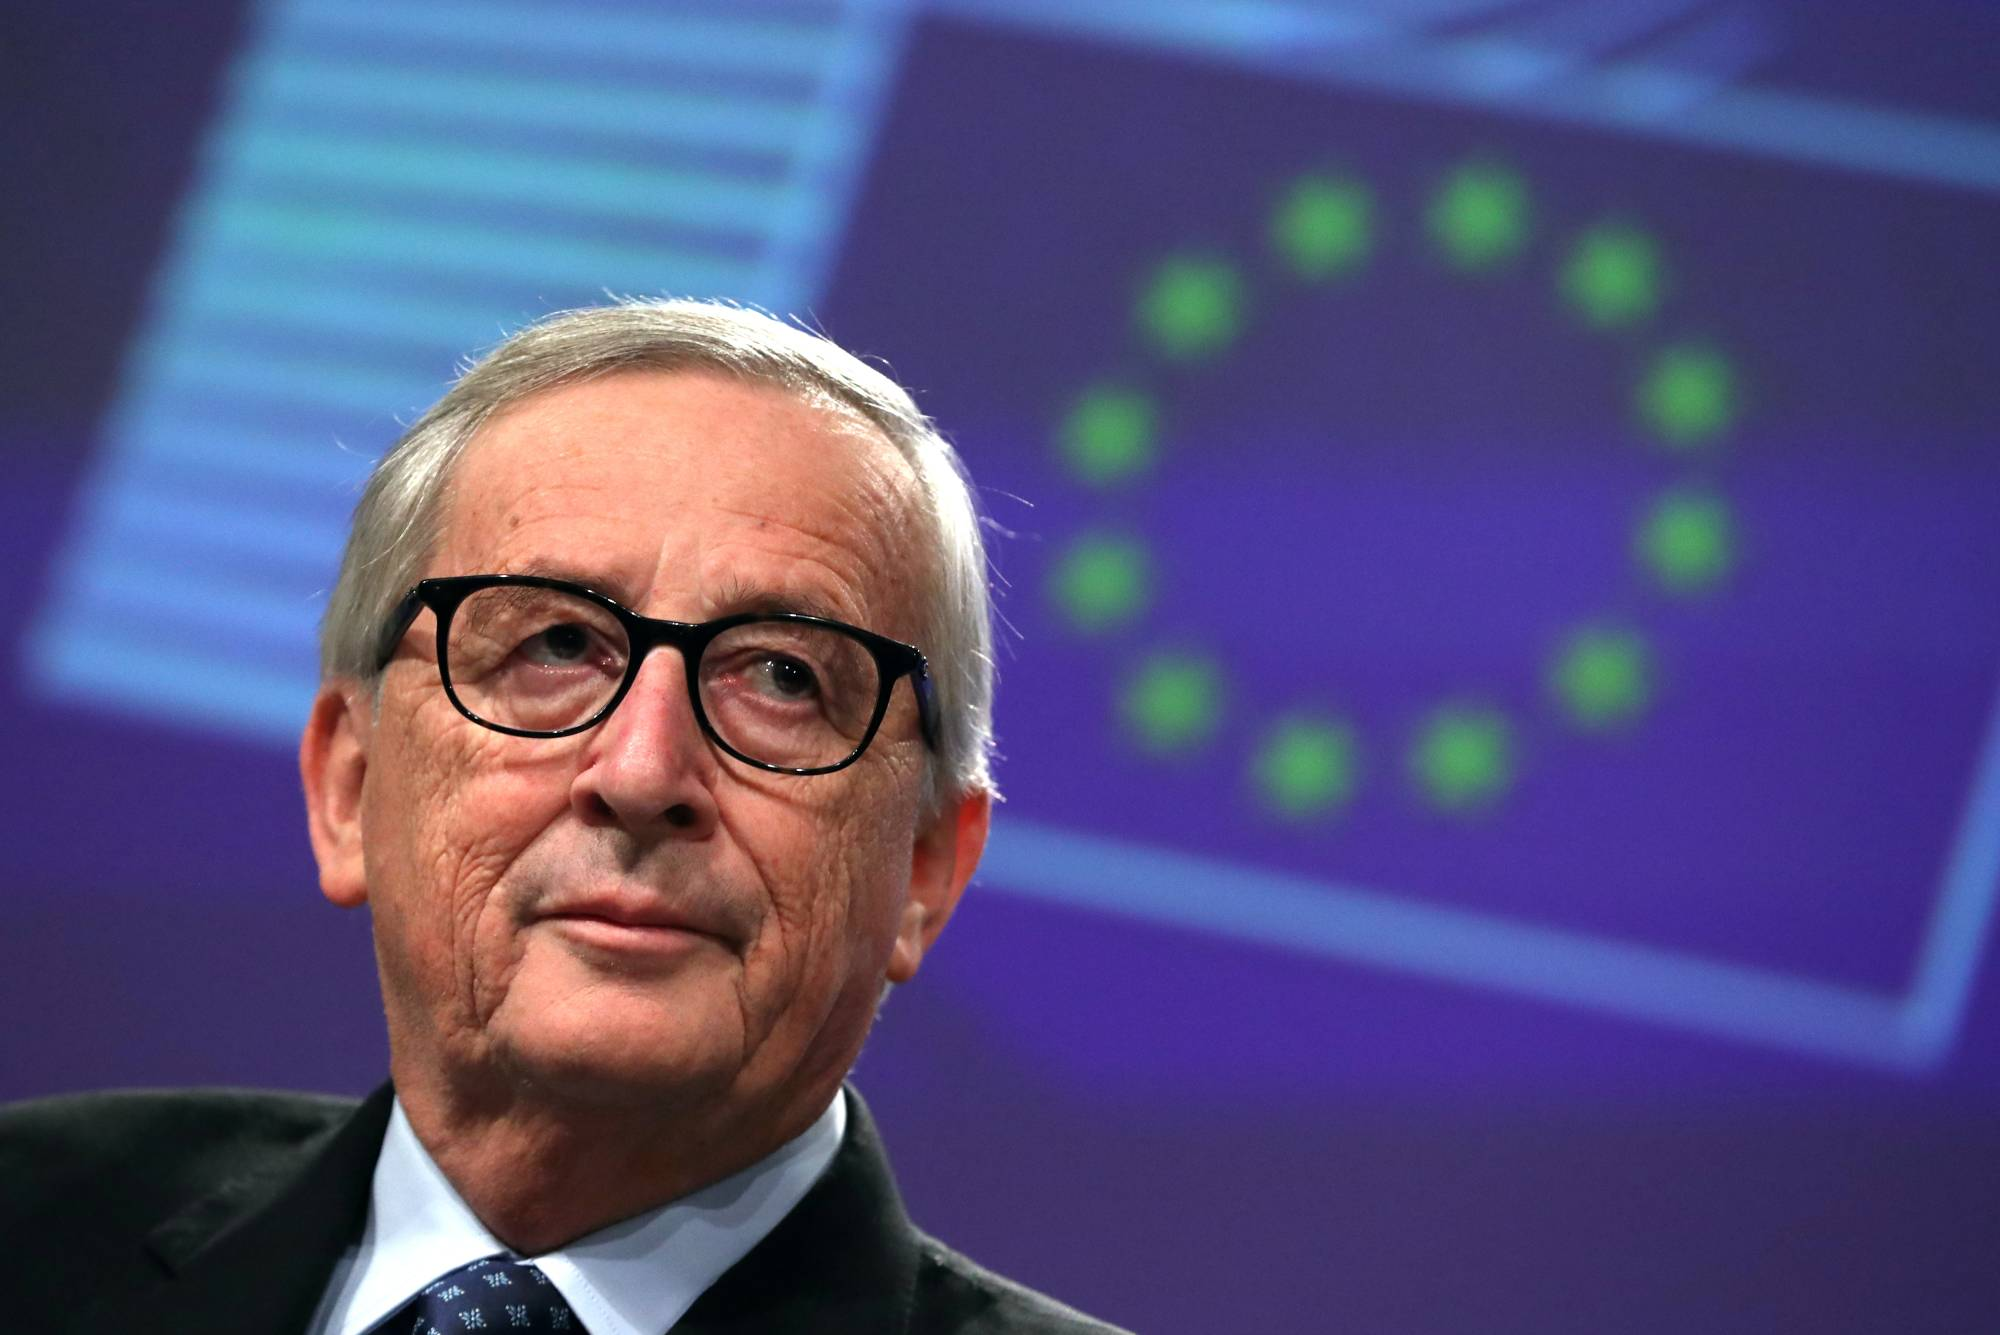 Former President of the European Commission Jean-Claude Juncker will receive the Grand Cordon of the Order of the Rising Sun. | REUTERS